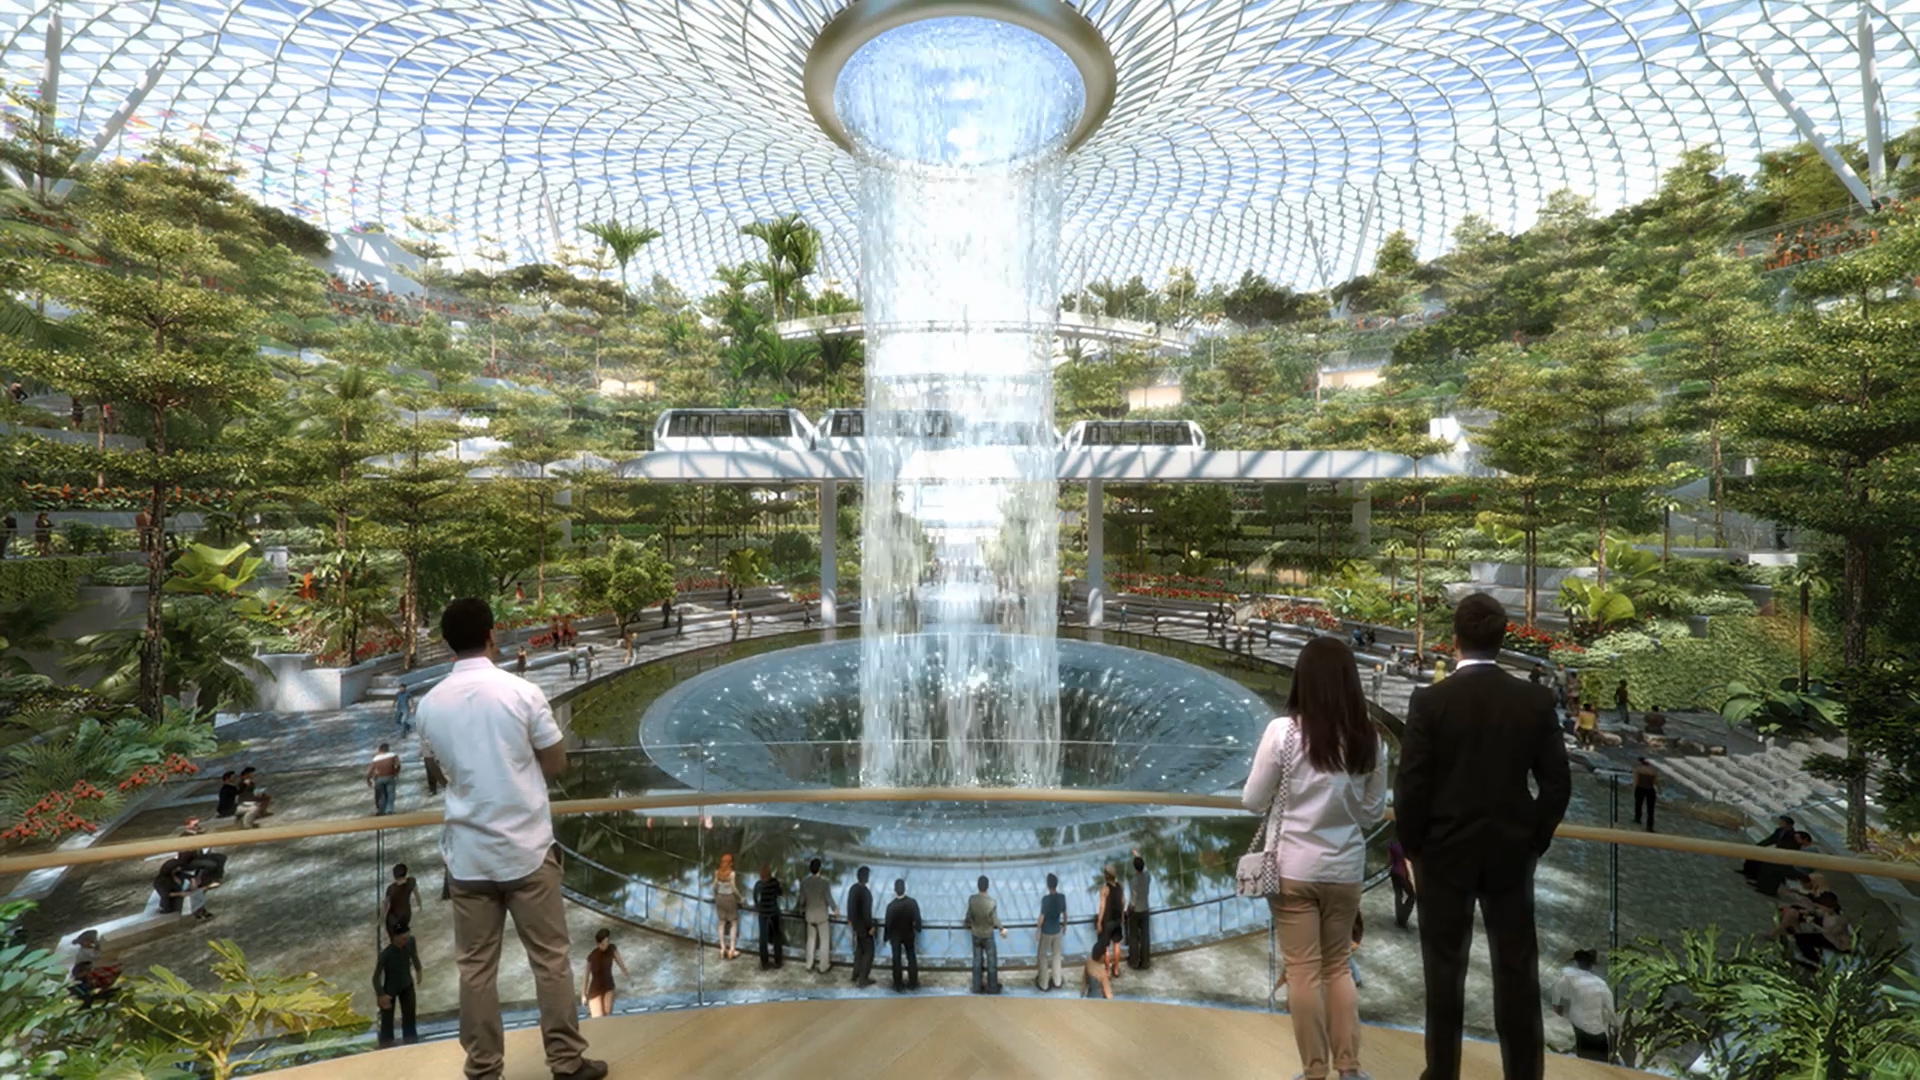 Singapore's Jewel Changi Airport is opening in 2019. Image: Bloomberg